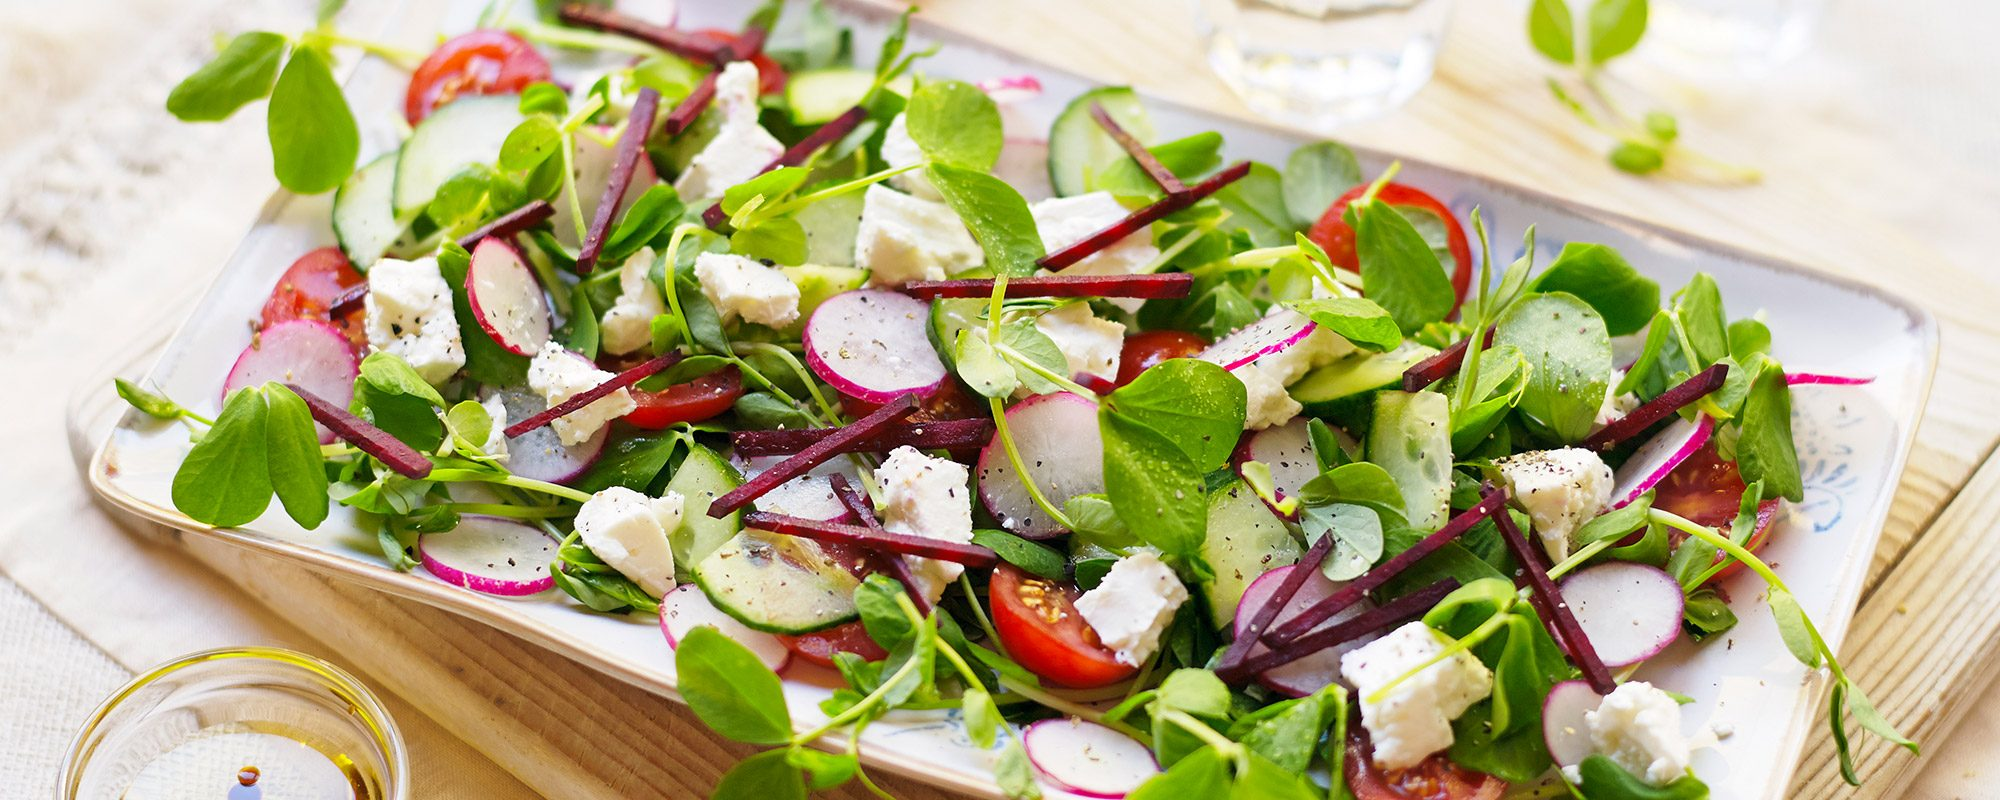 Pea Shoots, Feta Cheese and Radish Salad